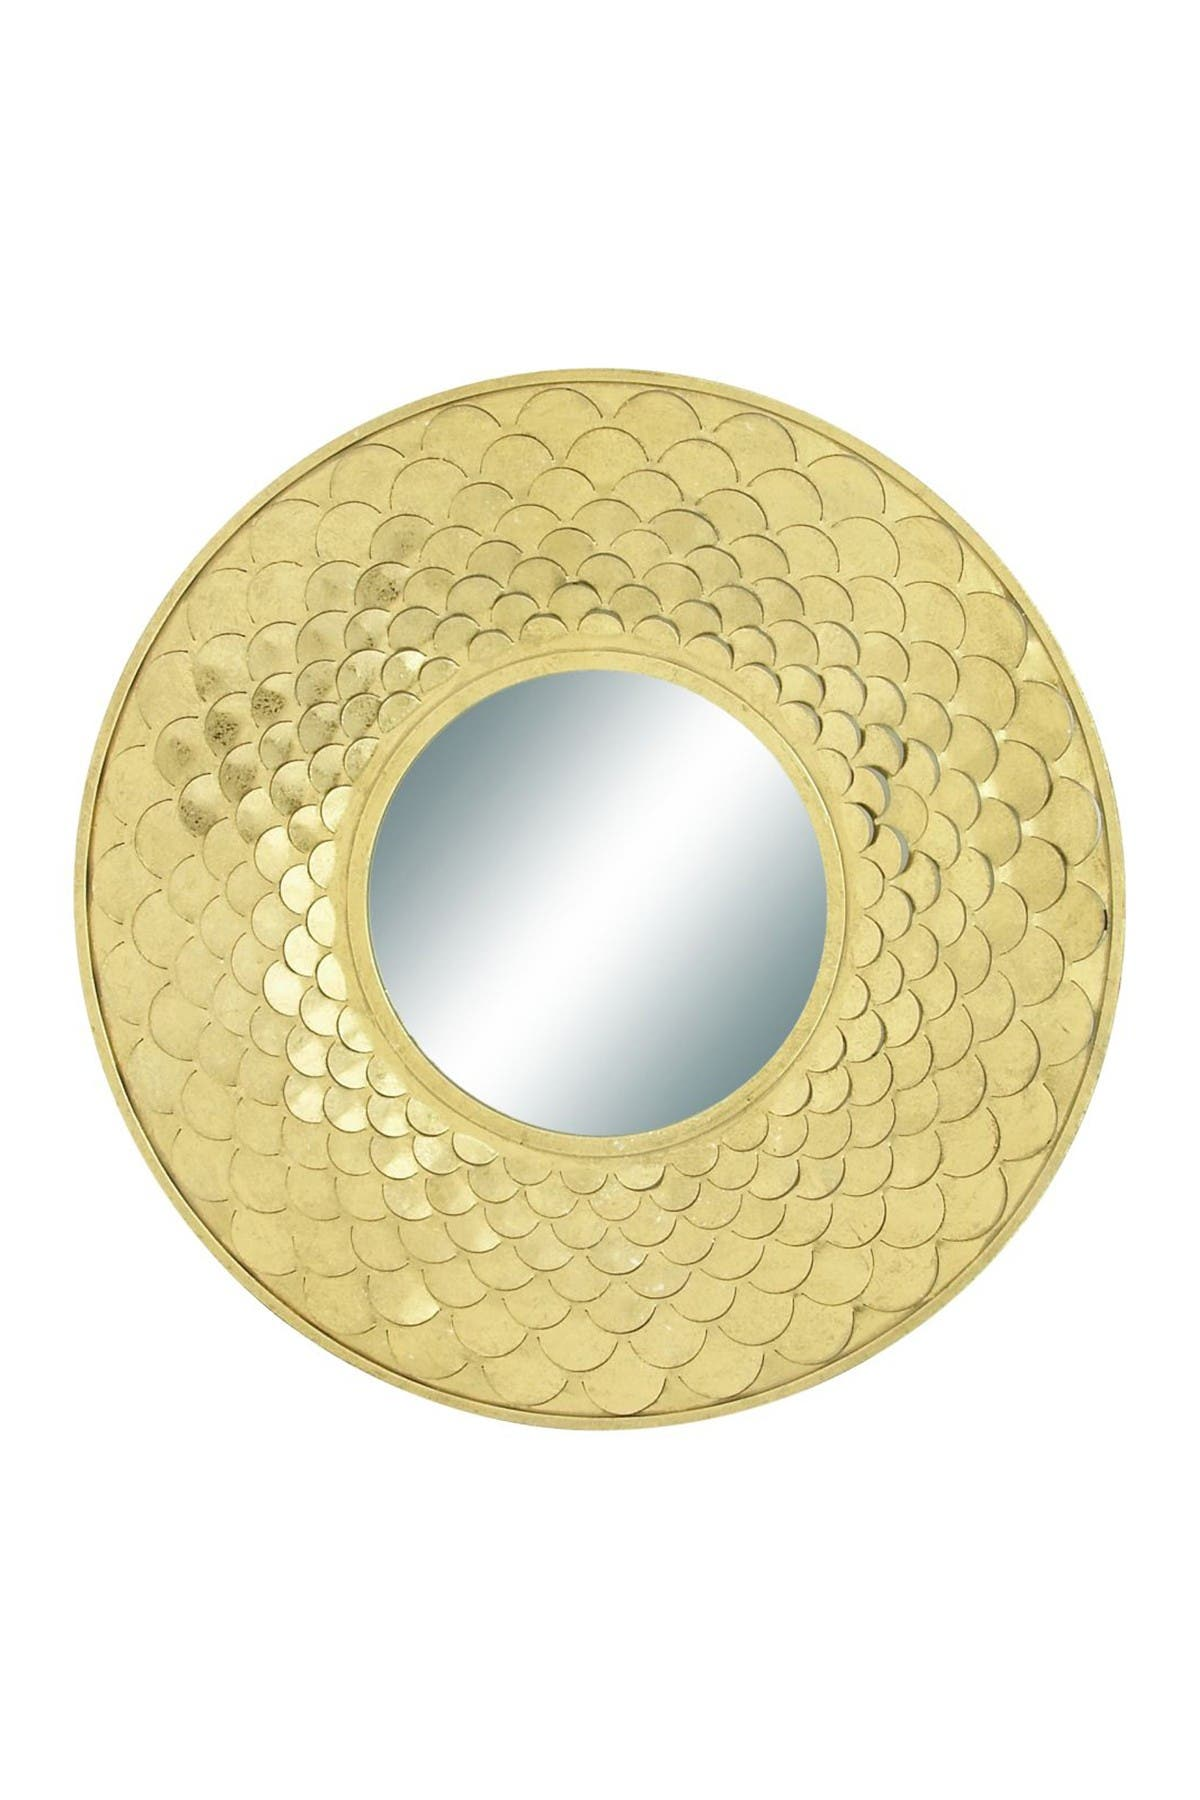 """Image of Willow Row Concentric Metal Wall Mirror - 32"""" Diameter"""